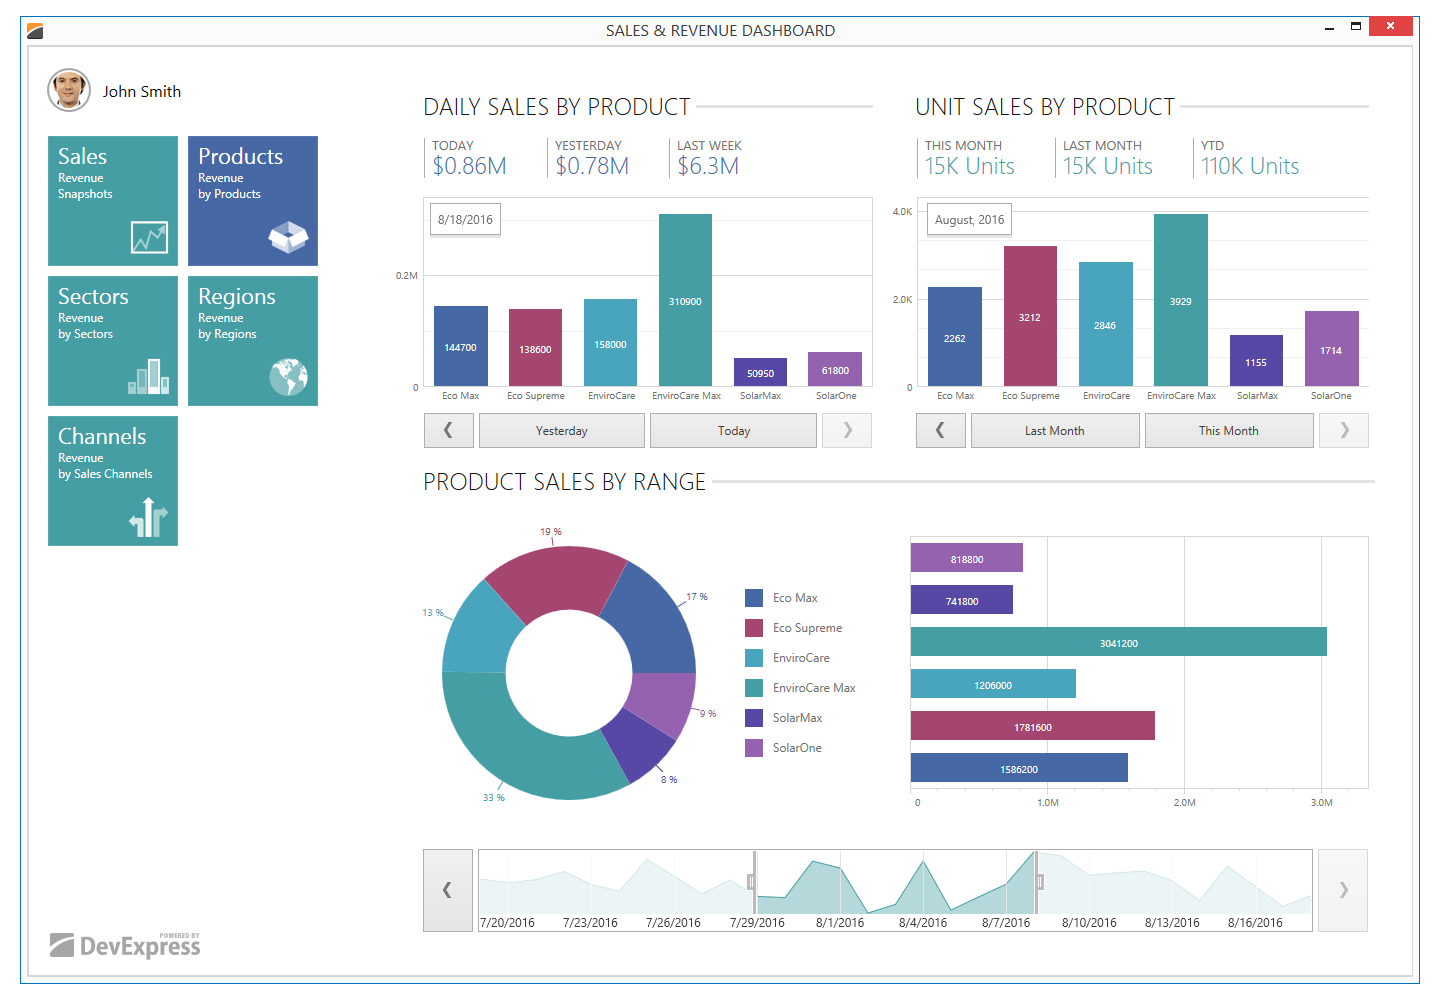 WPF Dashboard with Donut and Bar Charts